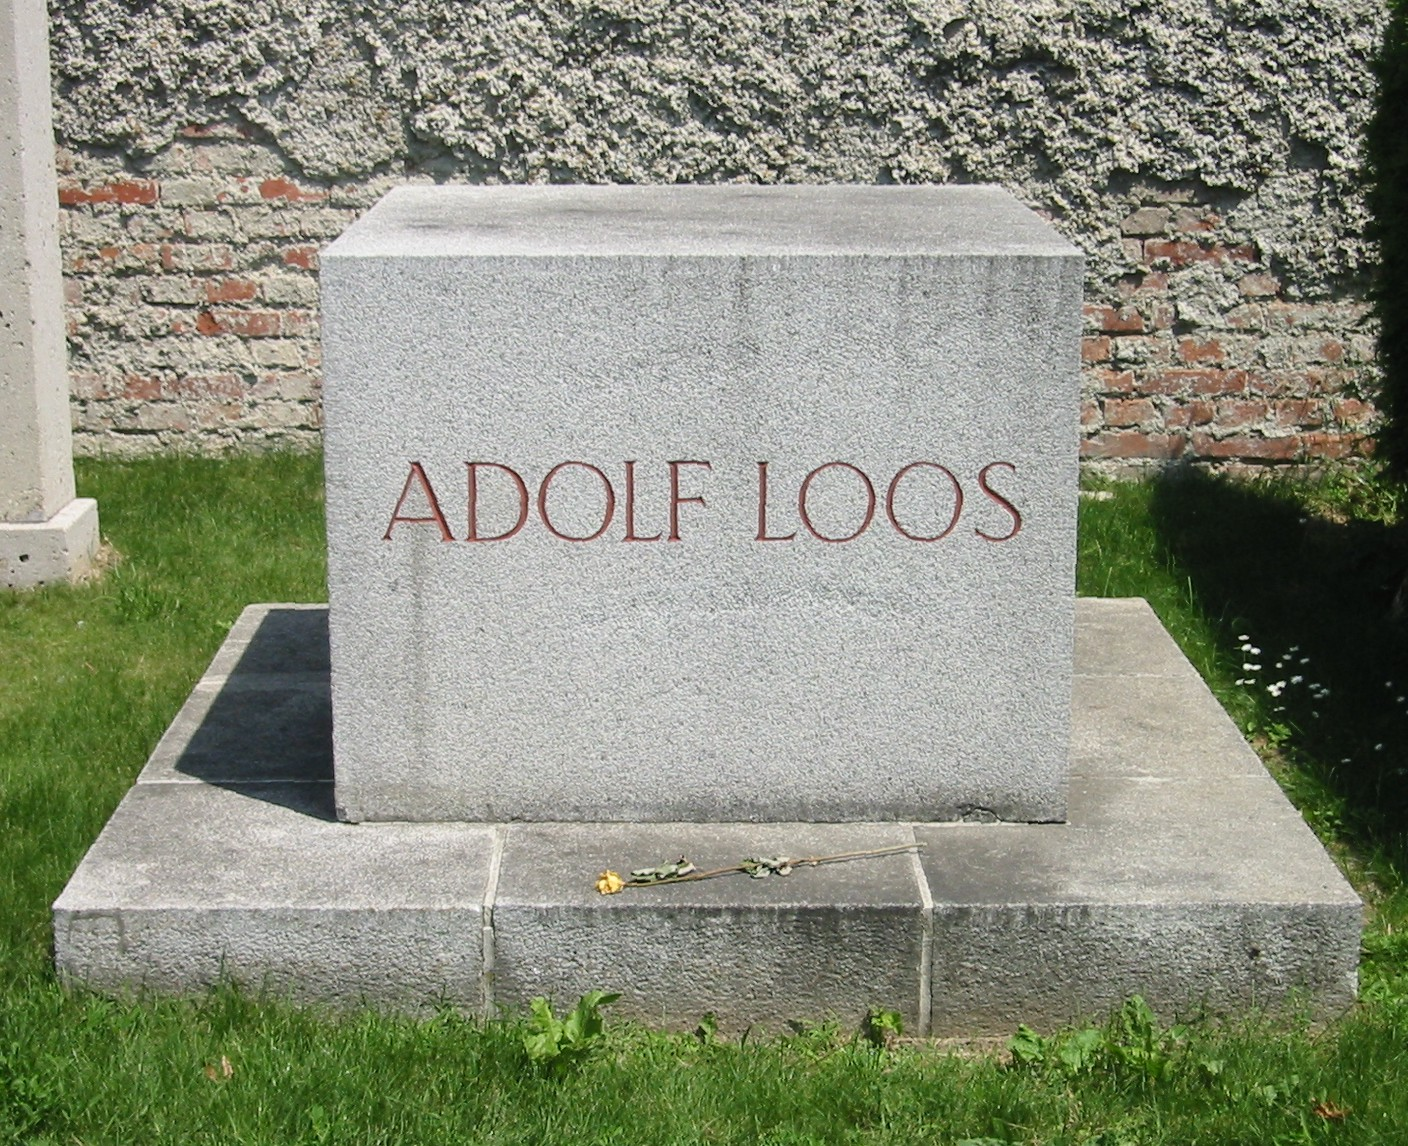 adolf loos essay Adolf franz karl viktor maria loos[1] (10 december 1870 – 23 august 1933) was an austrian and czech architect and influential european theorist of modern architecture his essay ornament and crime advocated smooth and clear surfaces in contrast to the lavish decorations of the fin de siècle and.